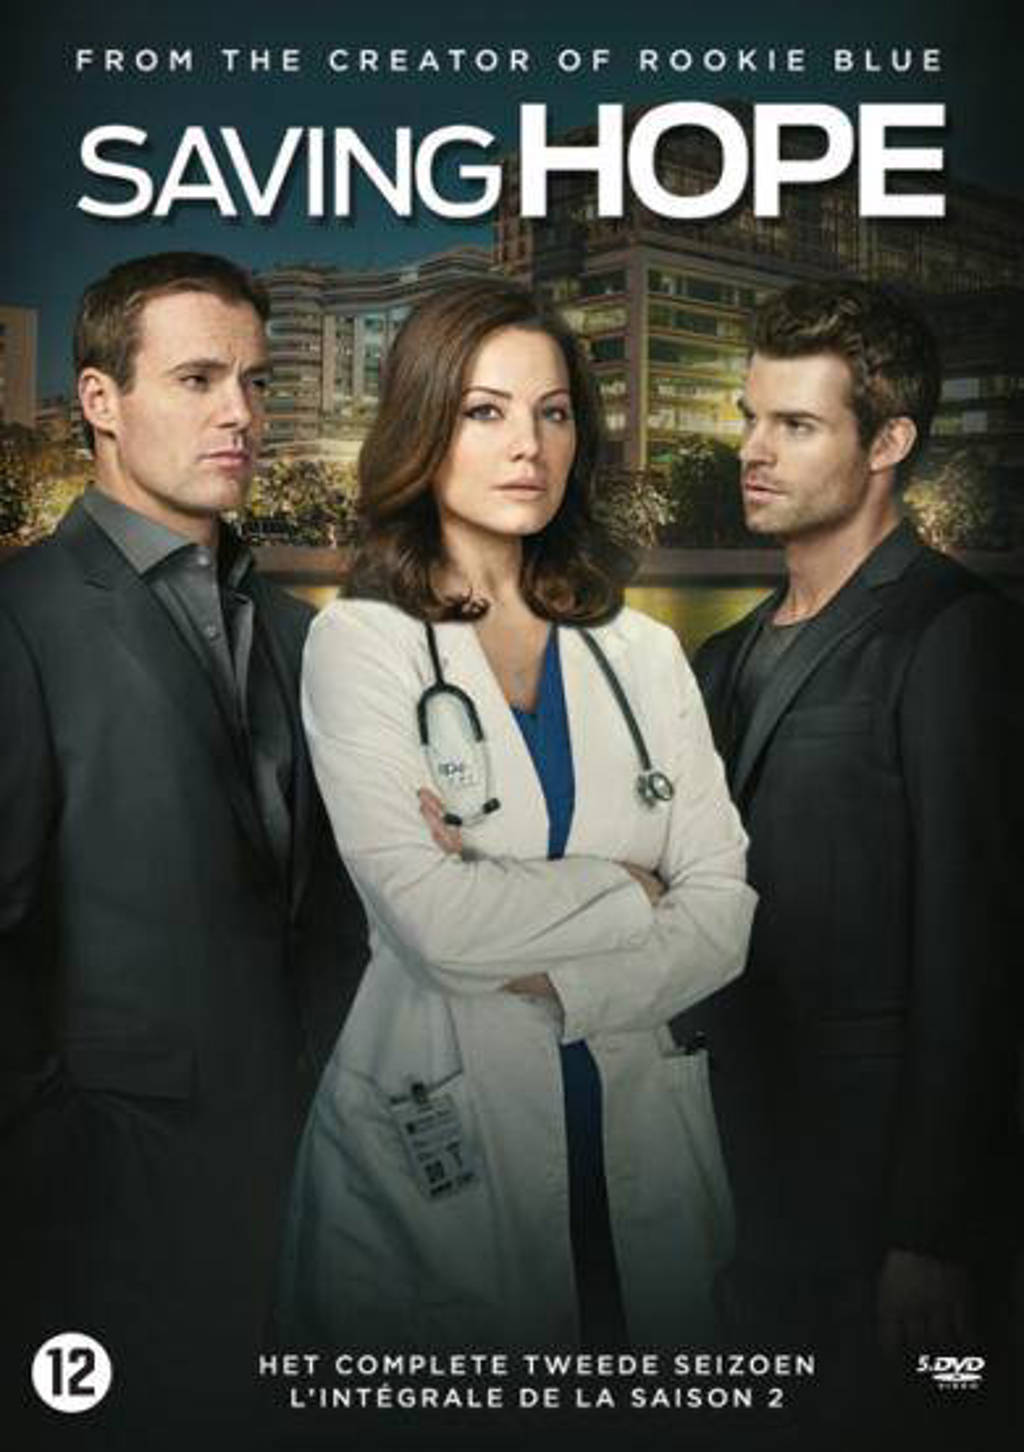 Saving hope - Seizoen 2 (DVD)